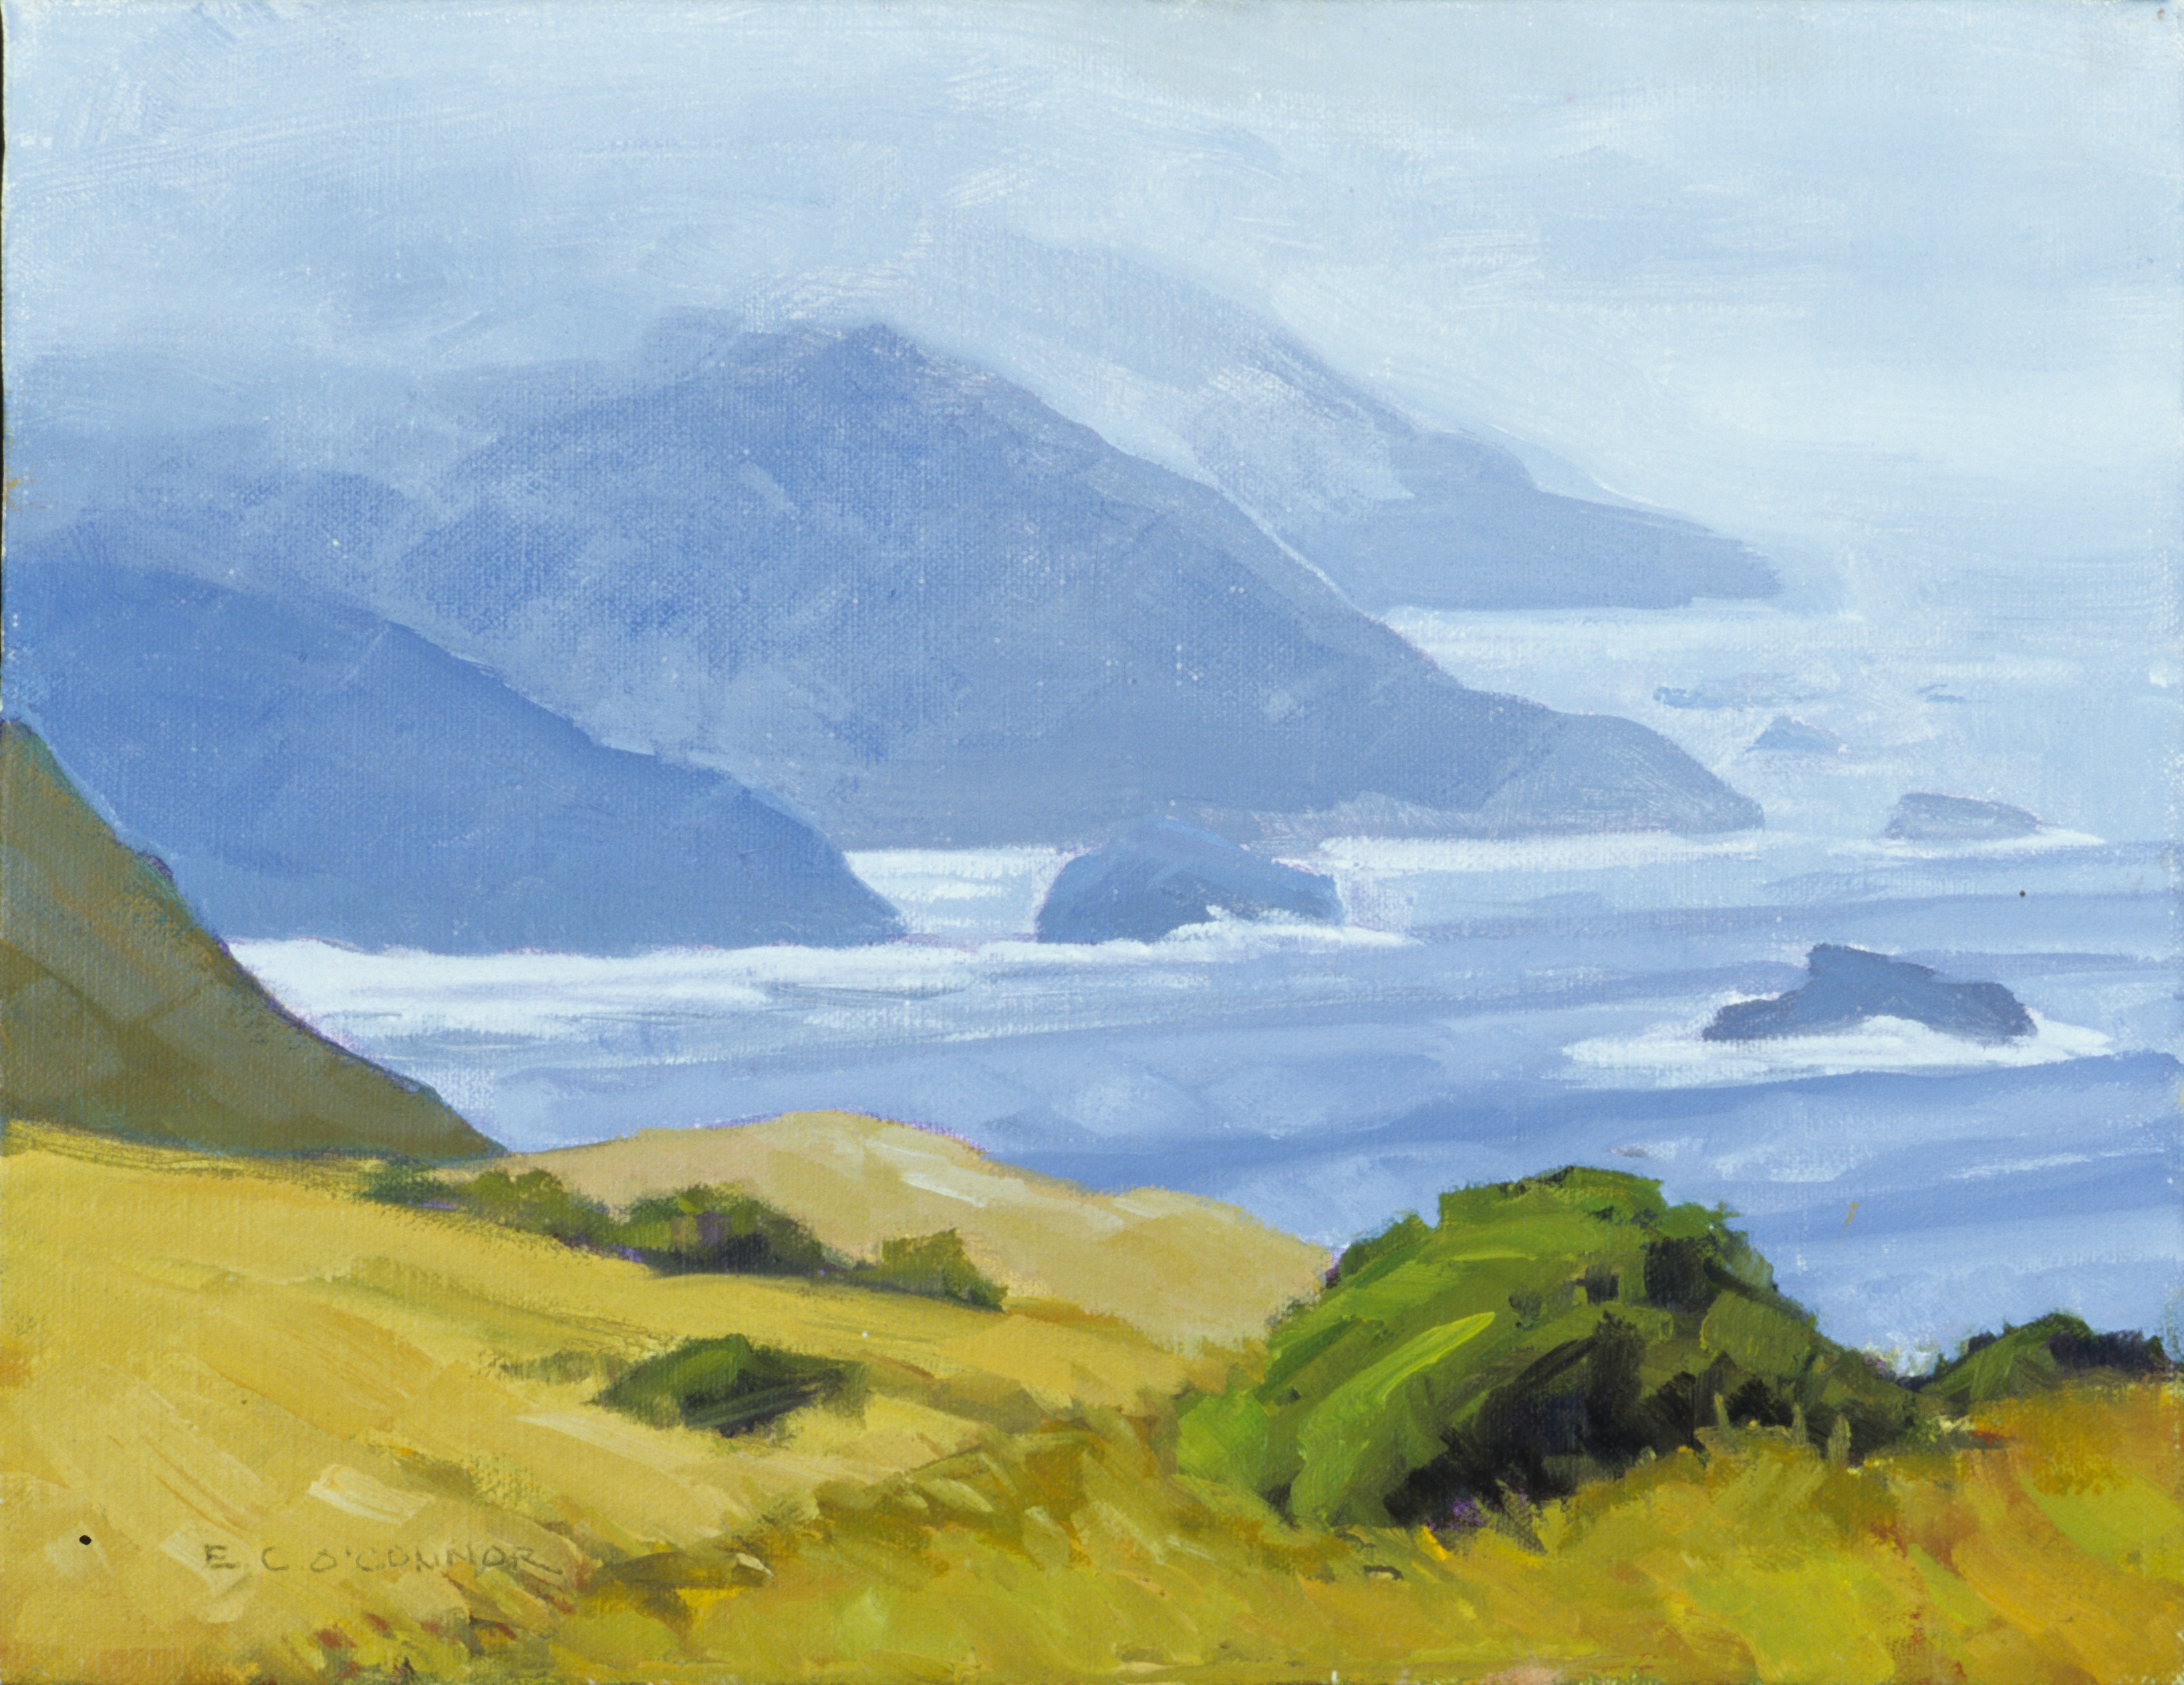 Sonoma County Coast, 9x12, oil on linen